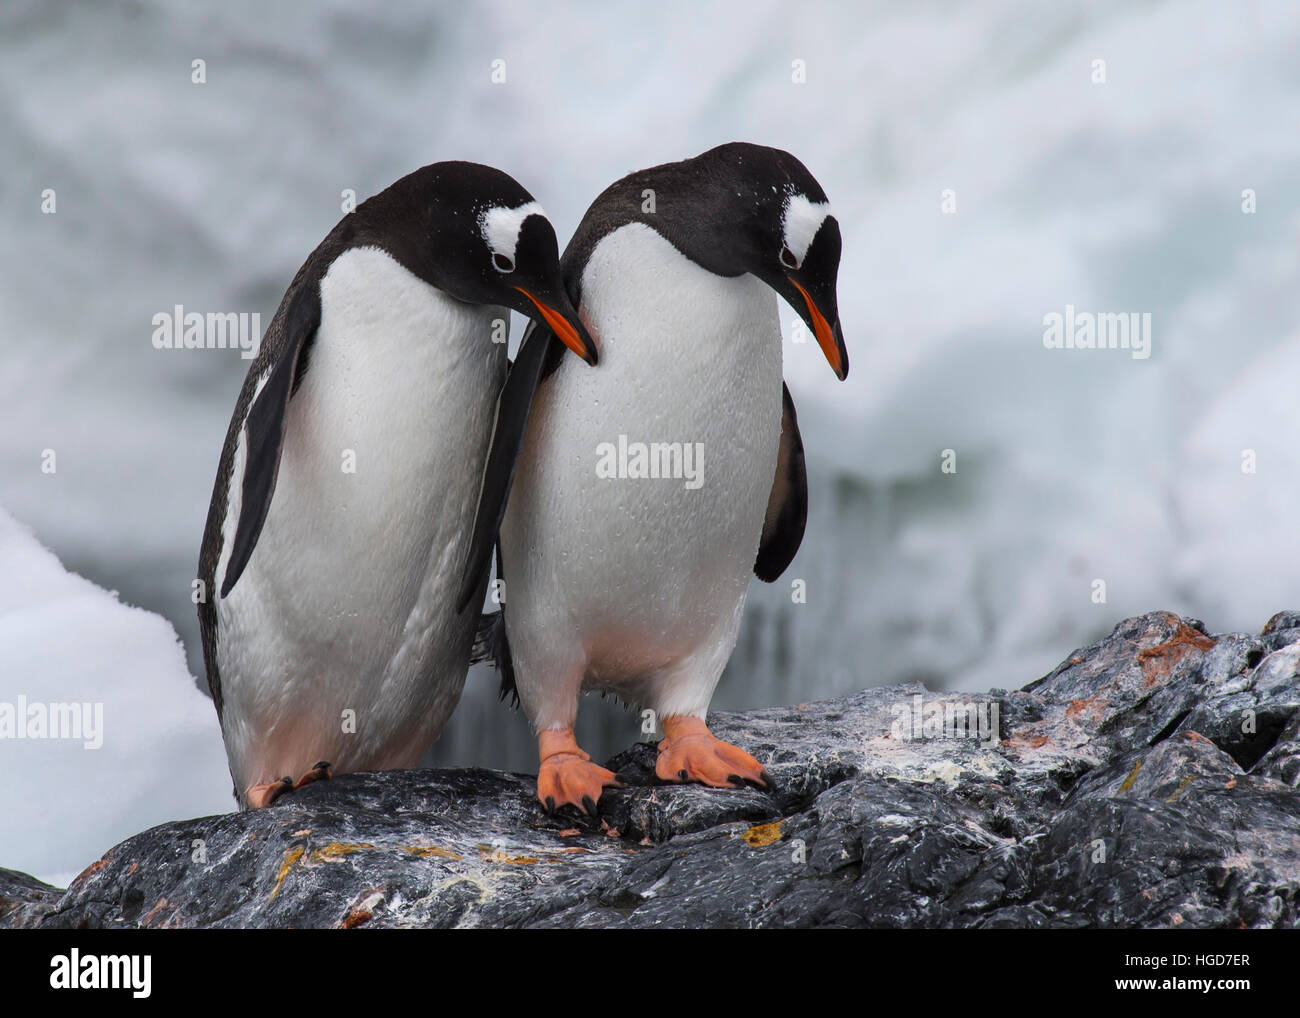 Gentoo Penguin on the rock - Stock Image